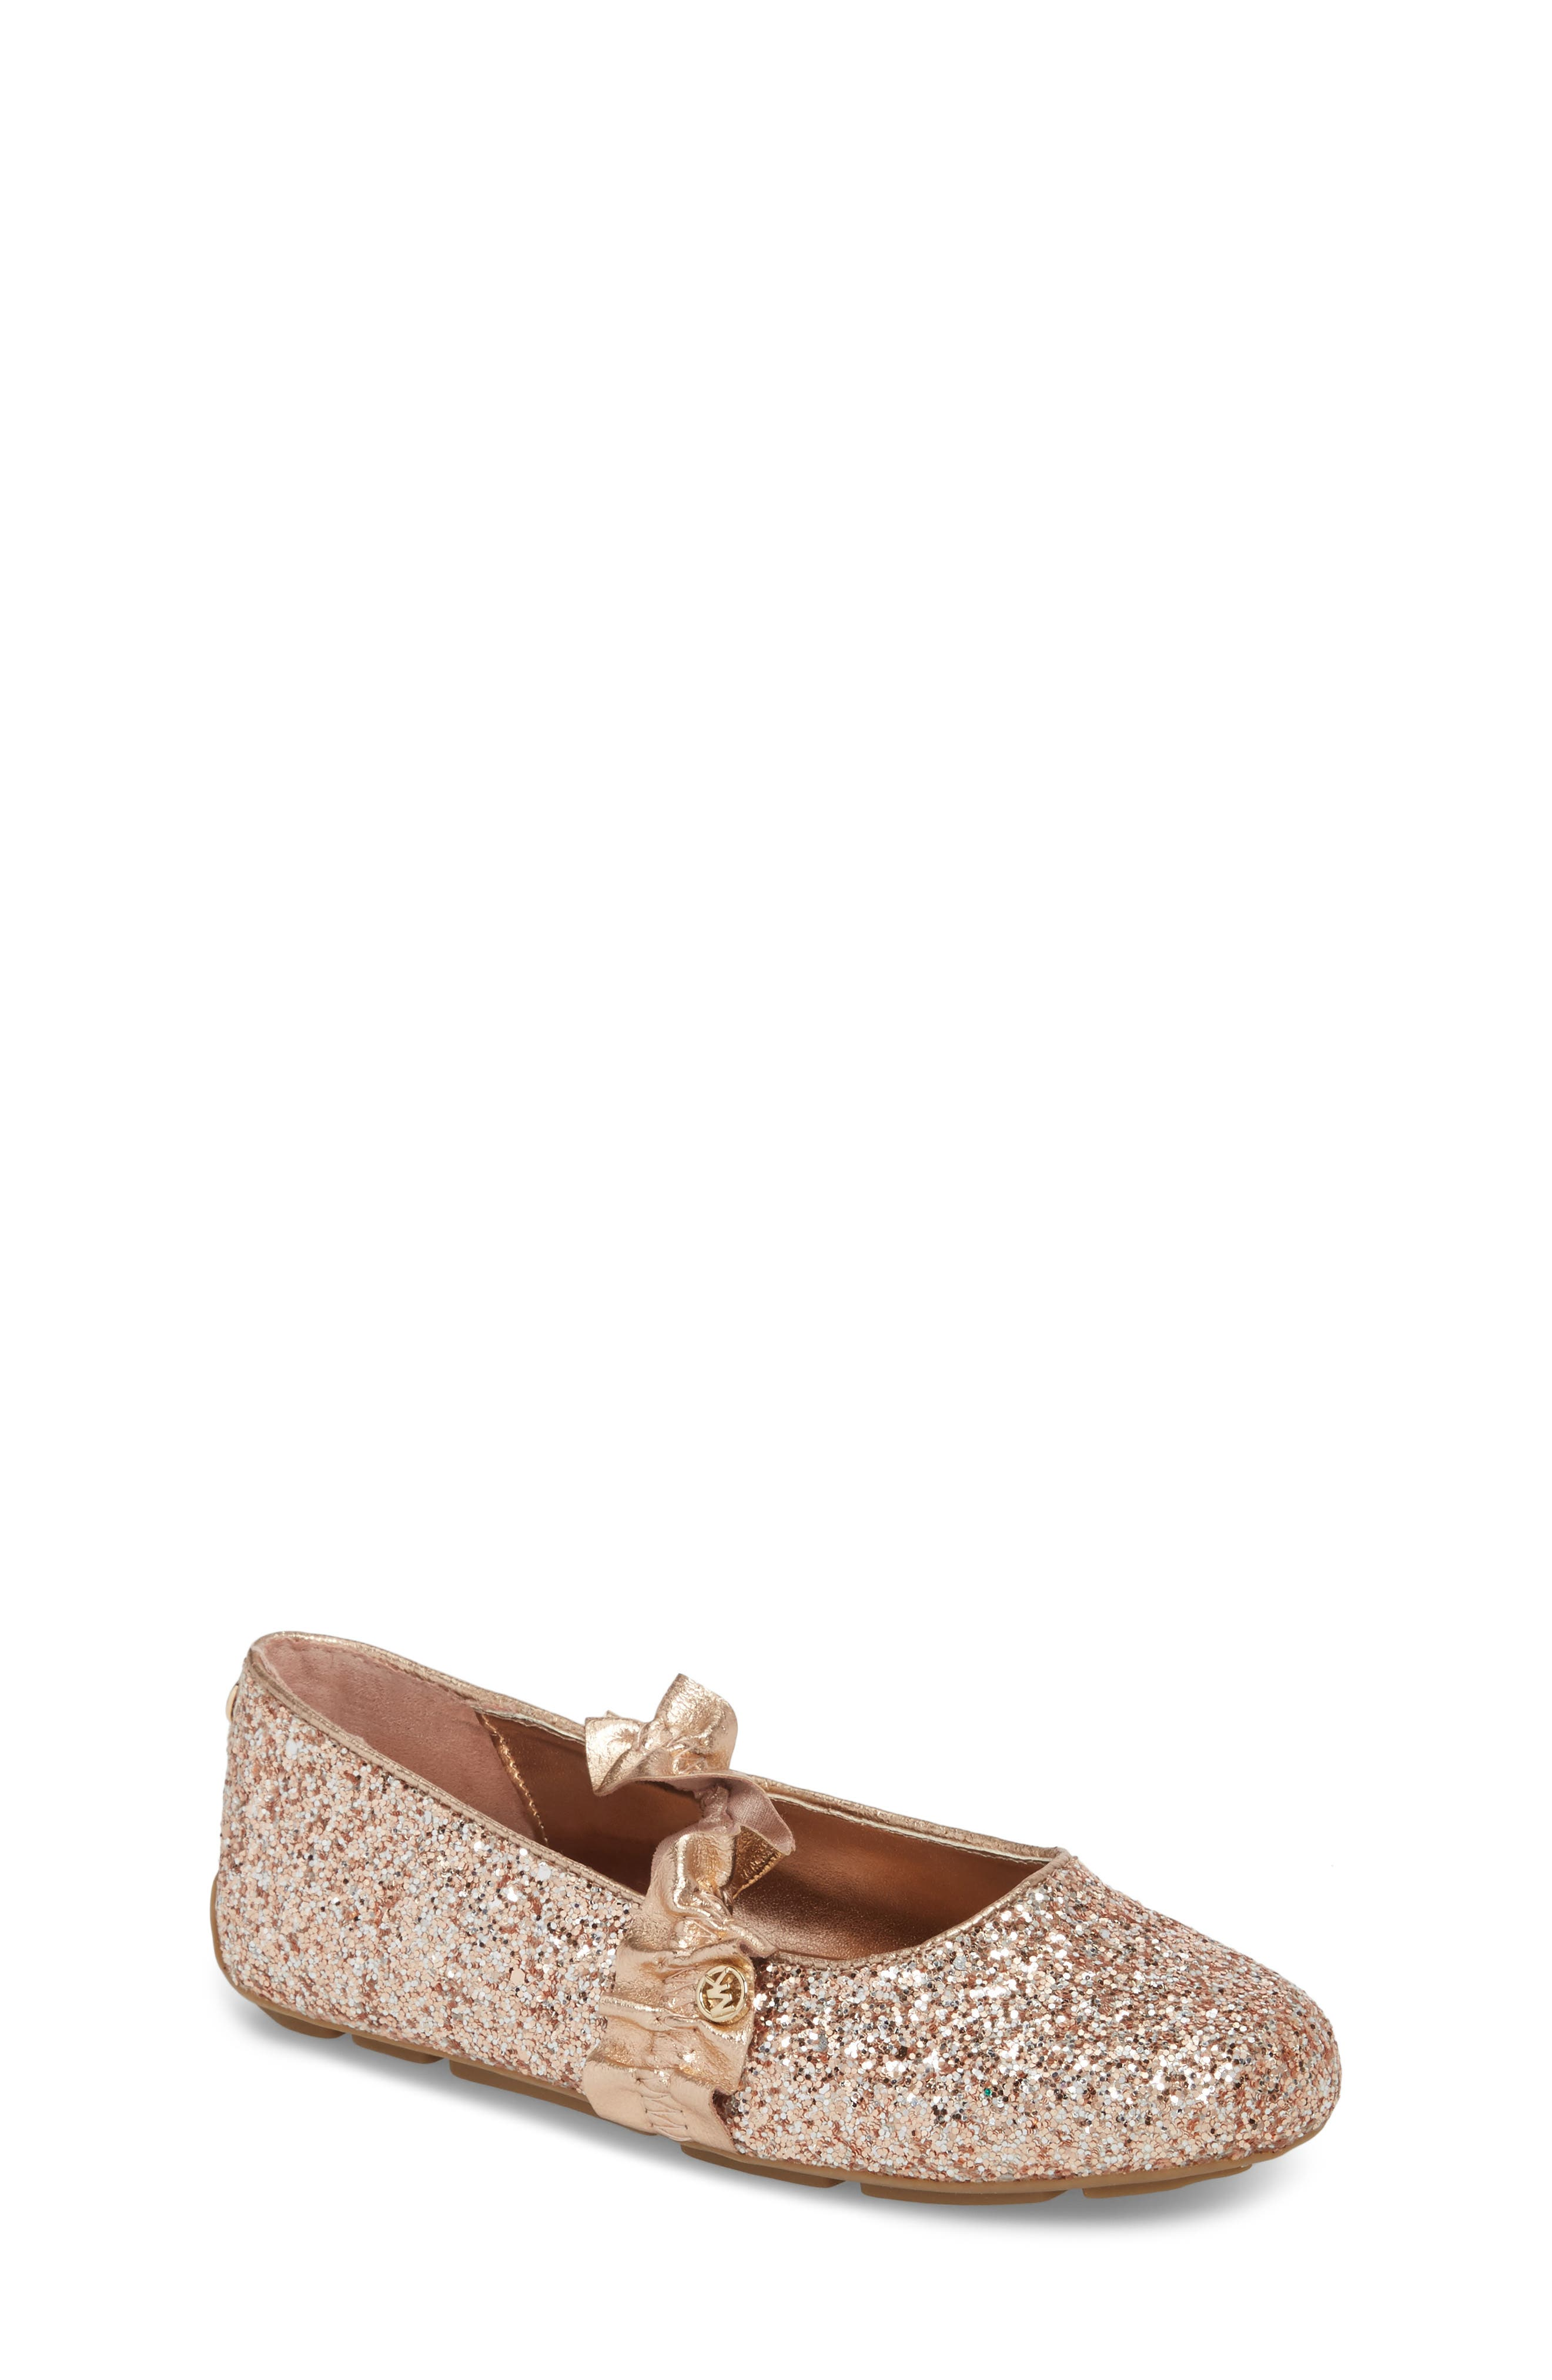 Rover Ruff Mary Jane Flat,                         Main,                         color, 220